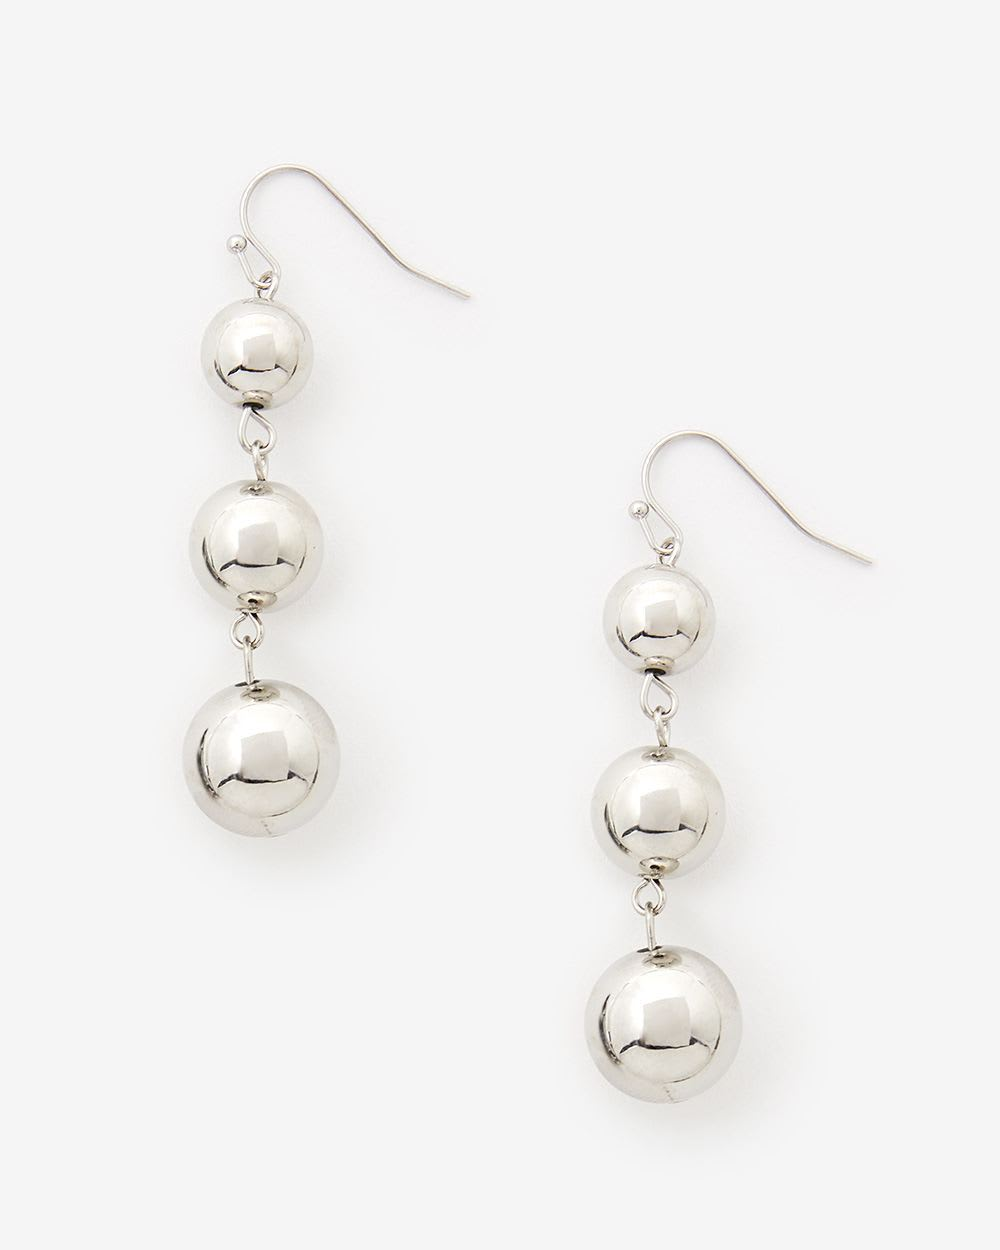 3-Ball Pendant Earrings